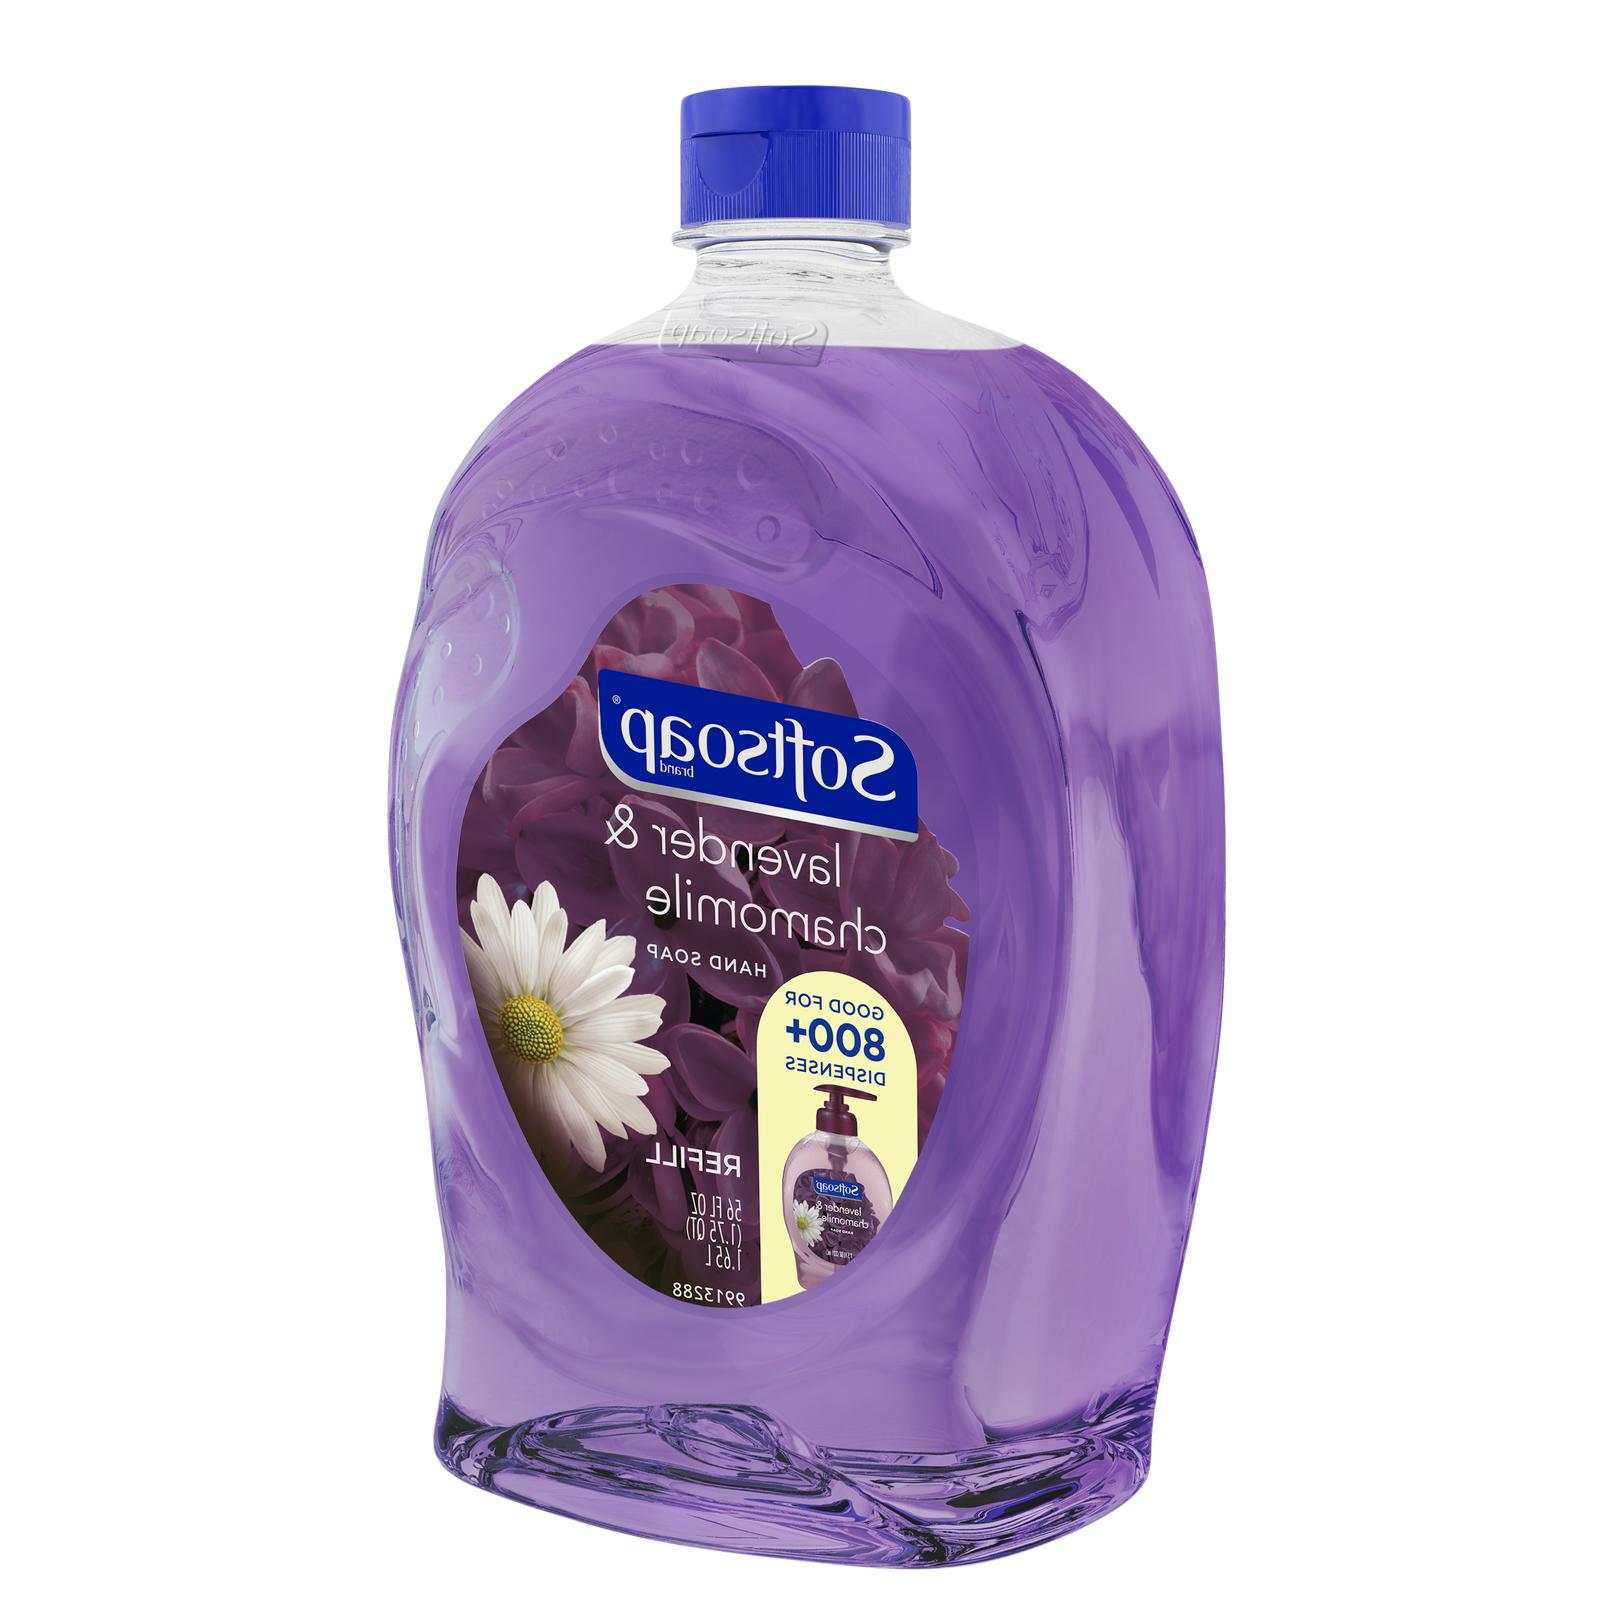 Softsoap Refill, Lavender and - 56